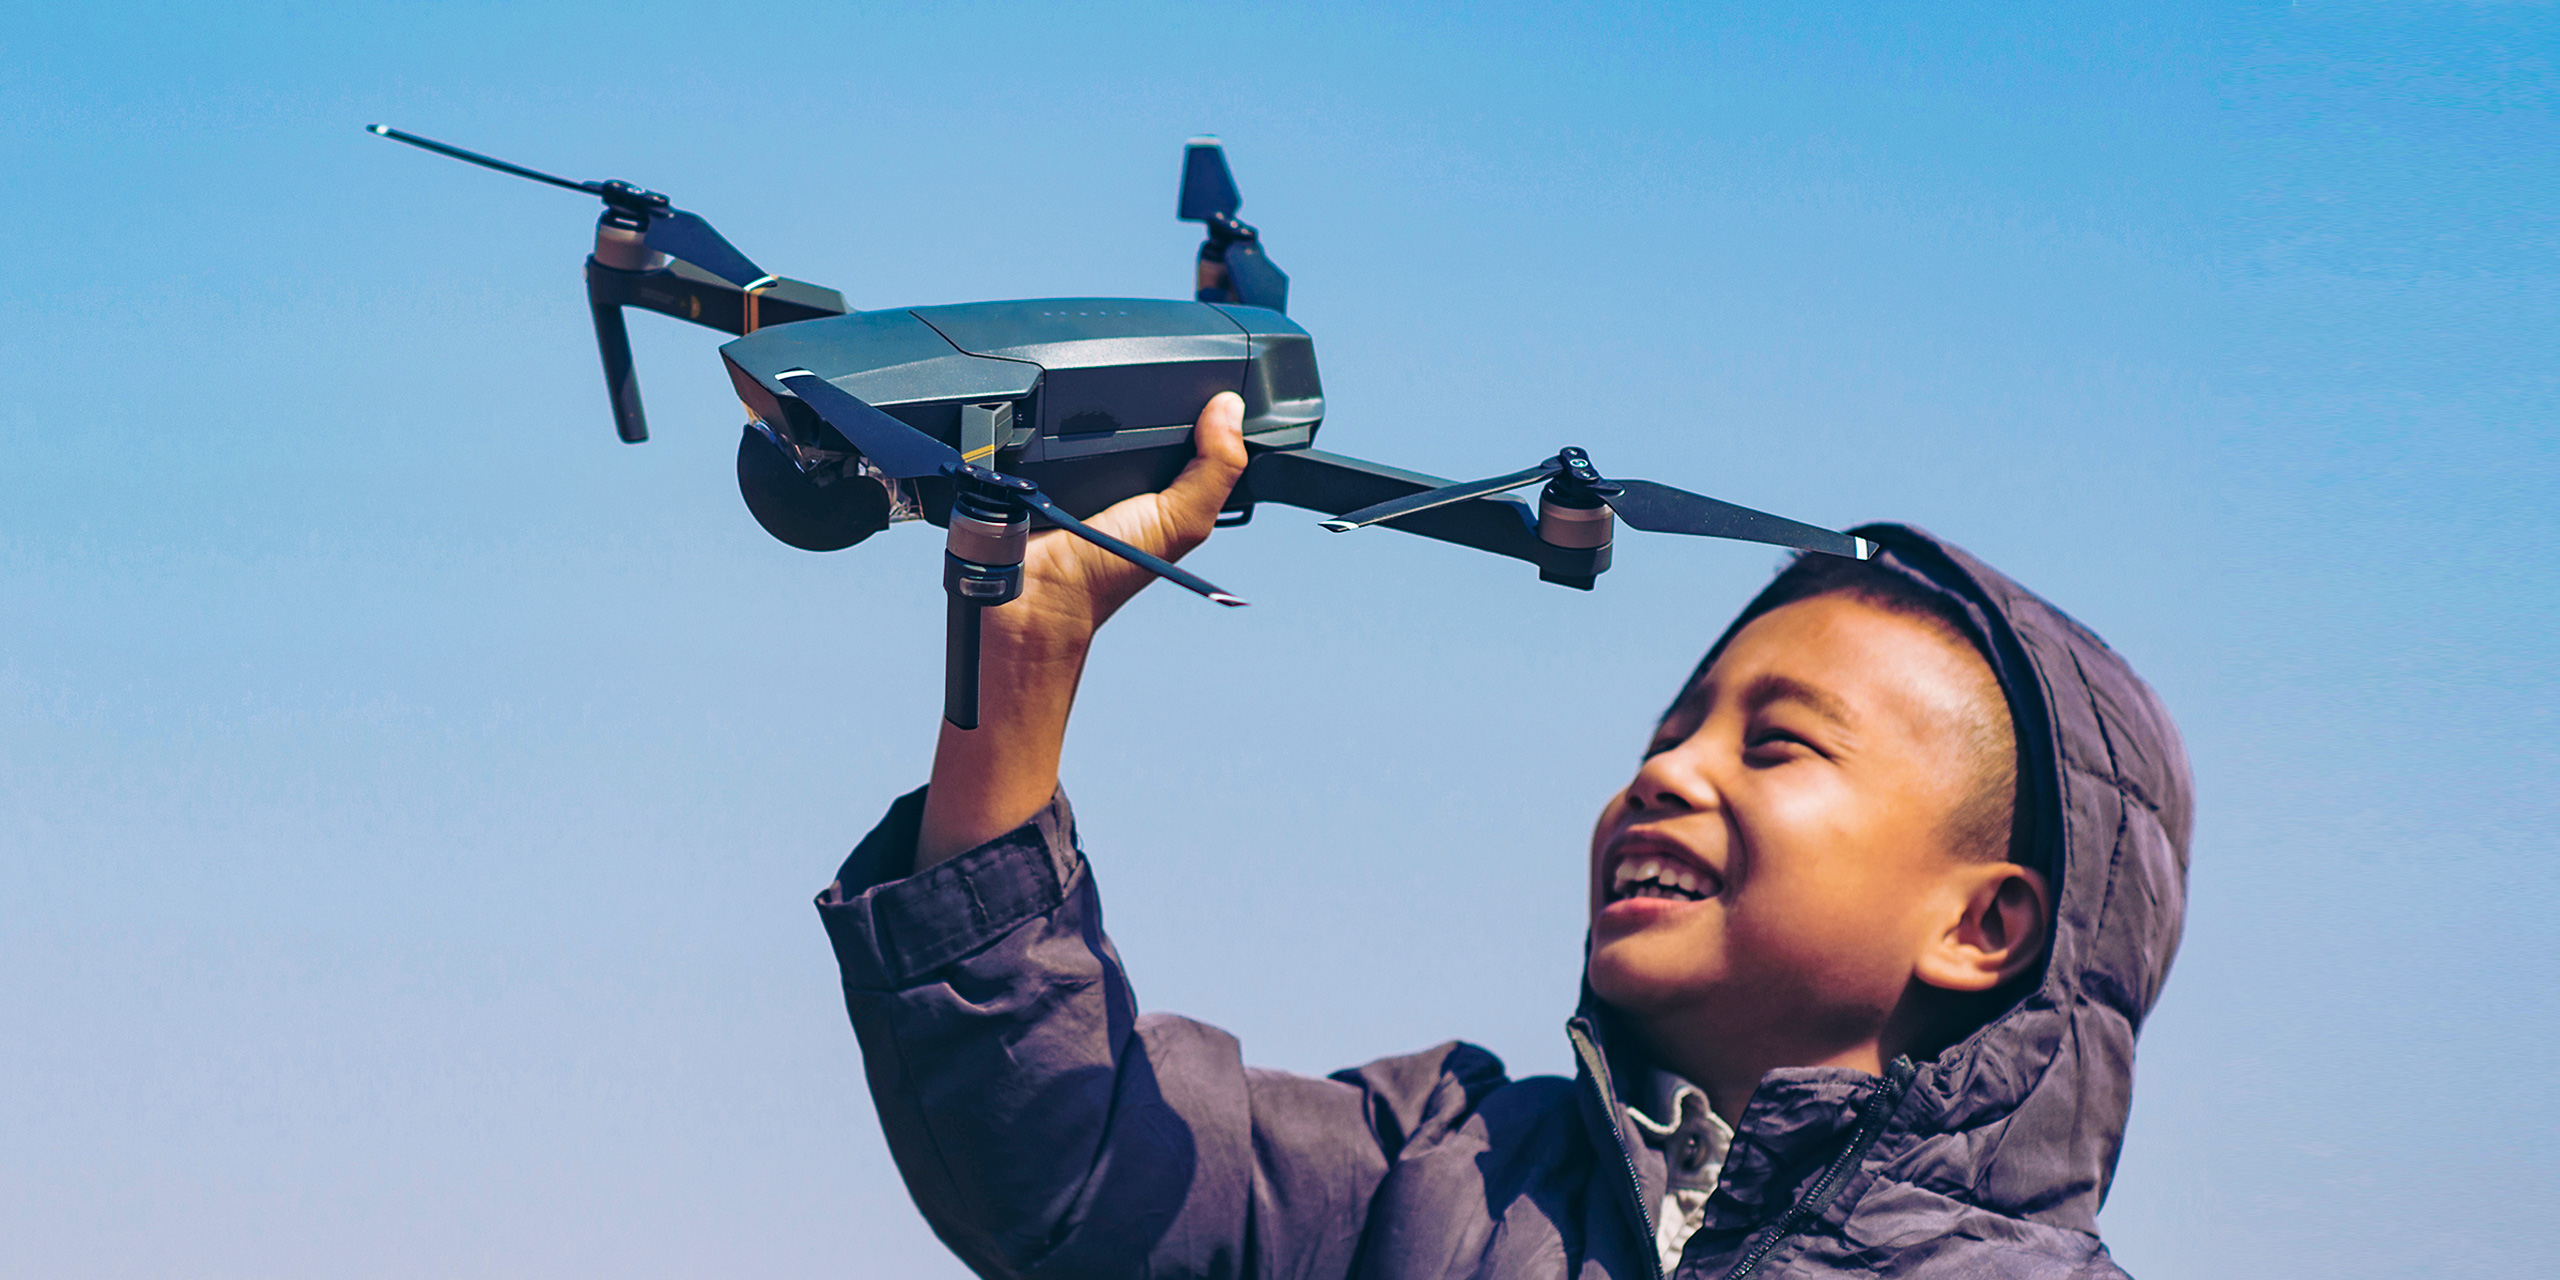 boy holding up a drone in field; Courtesy GNT STUDIO/Shutterstock